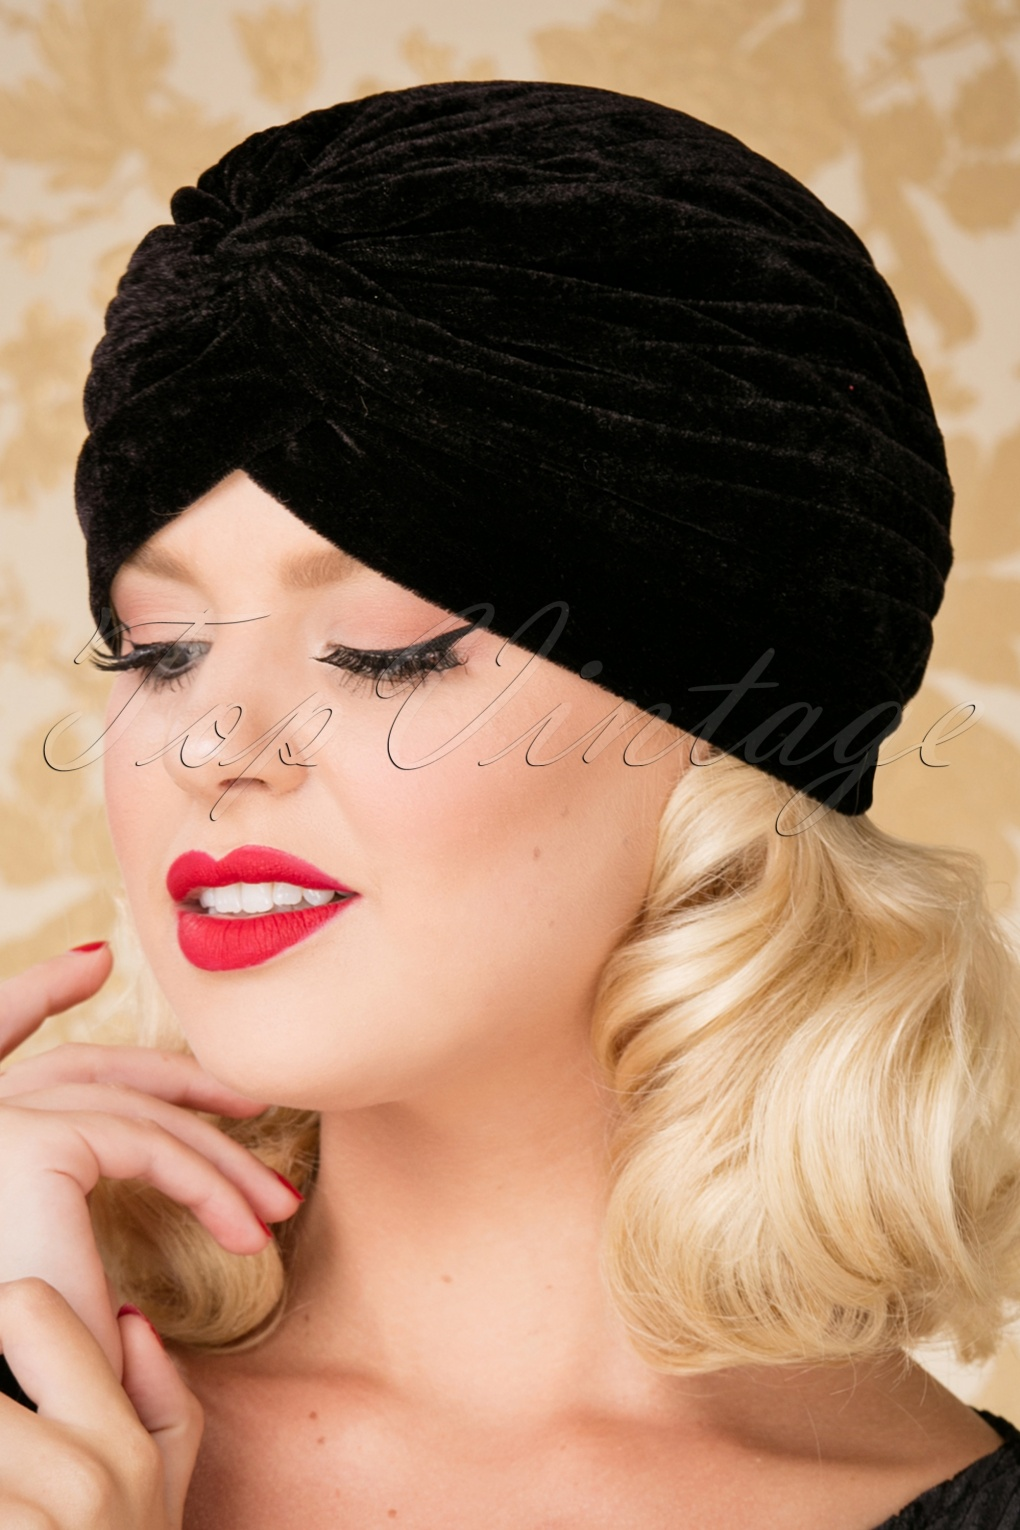 Vintage Hair Accessories: Combs, Headbands, Flowers, Scarf, Wigs 20s Warlock Velvet Turban Hat in Black £5.23 AT vintagedancer.com